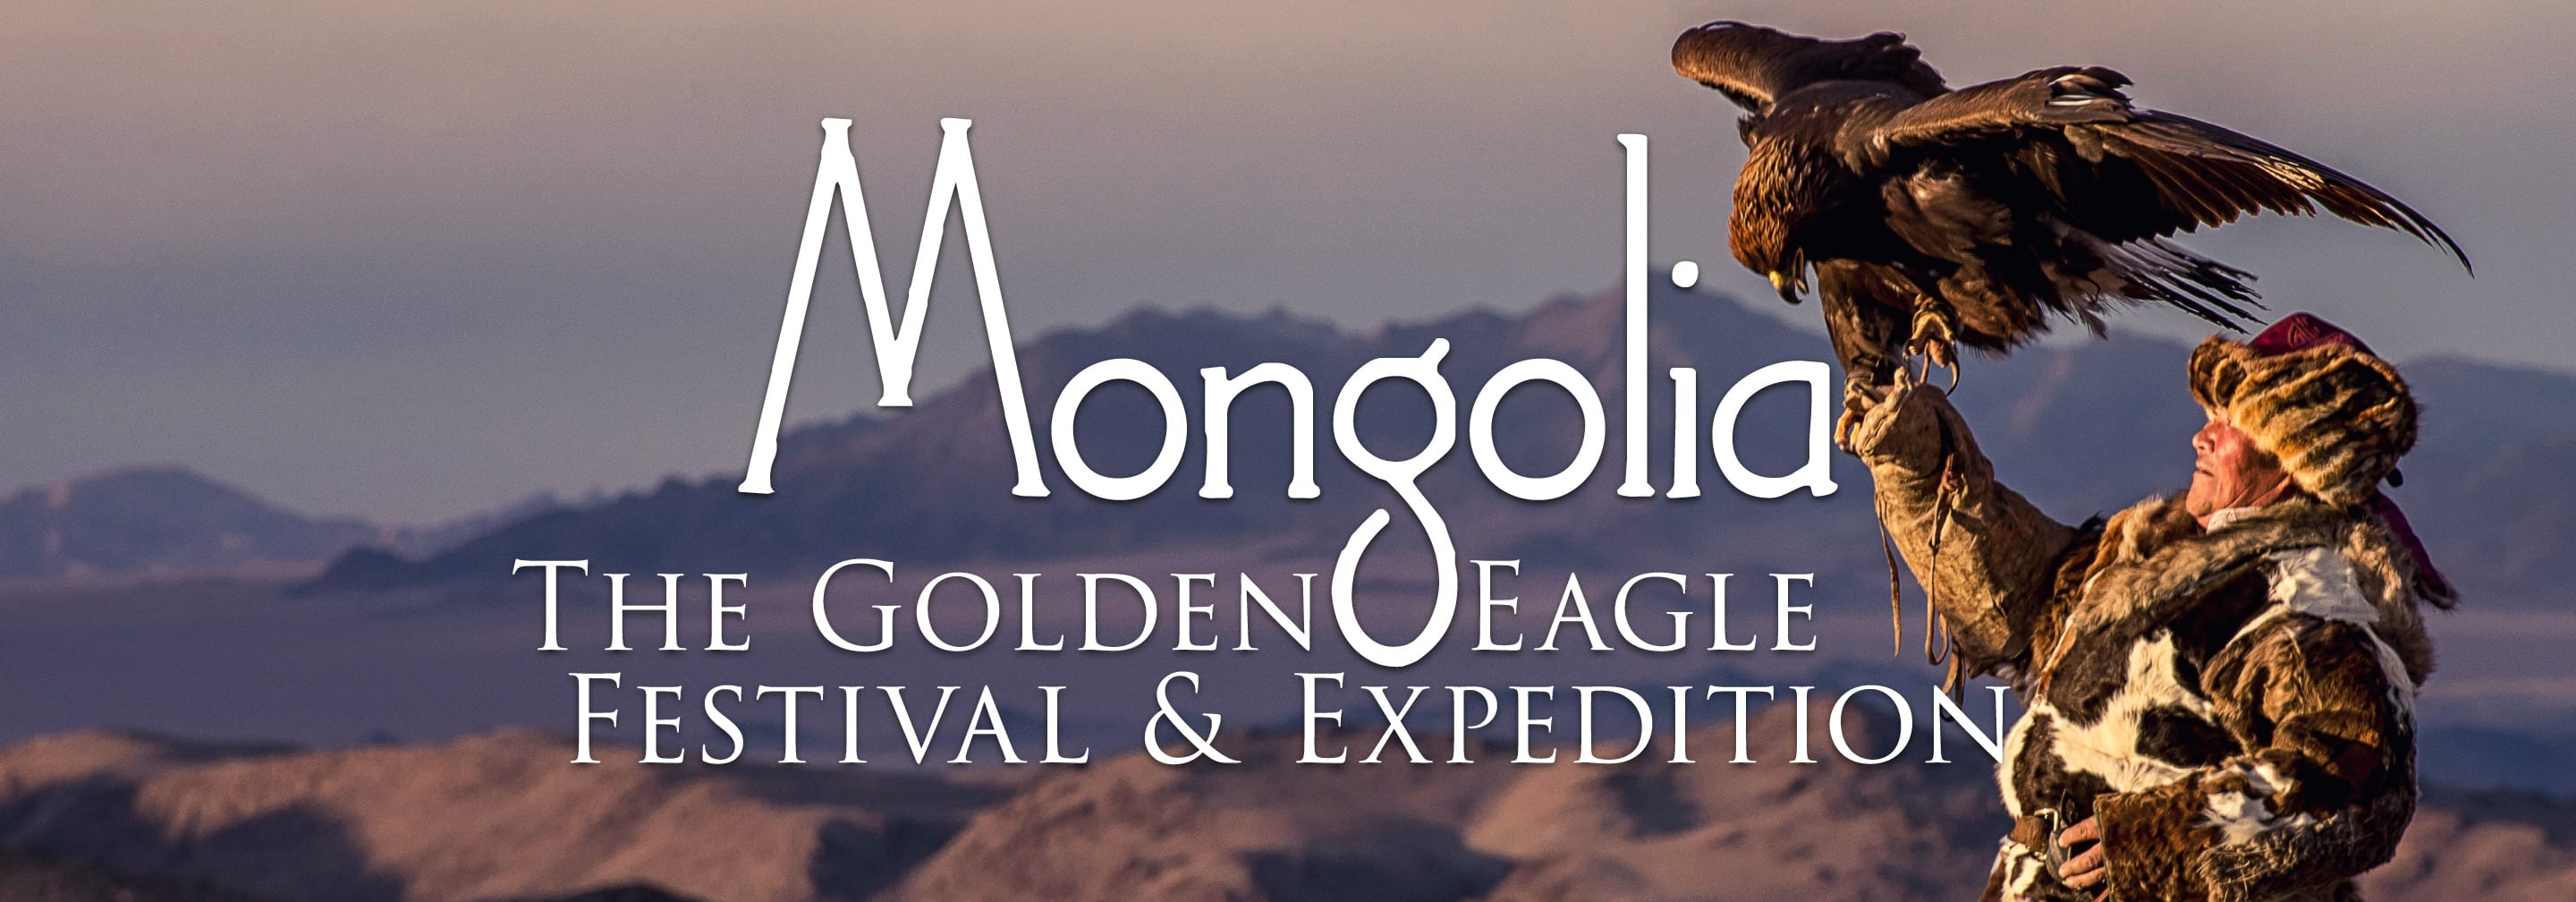 Mongolia: The Golden Eagle Festival & Expedition header image